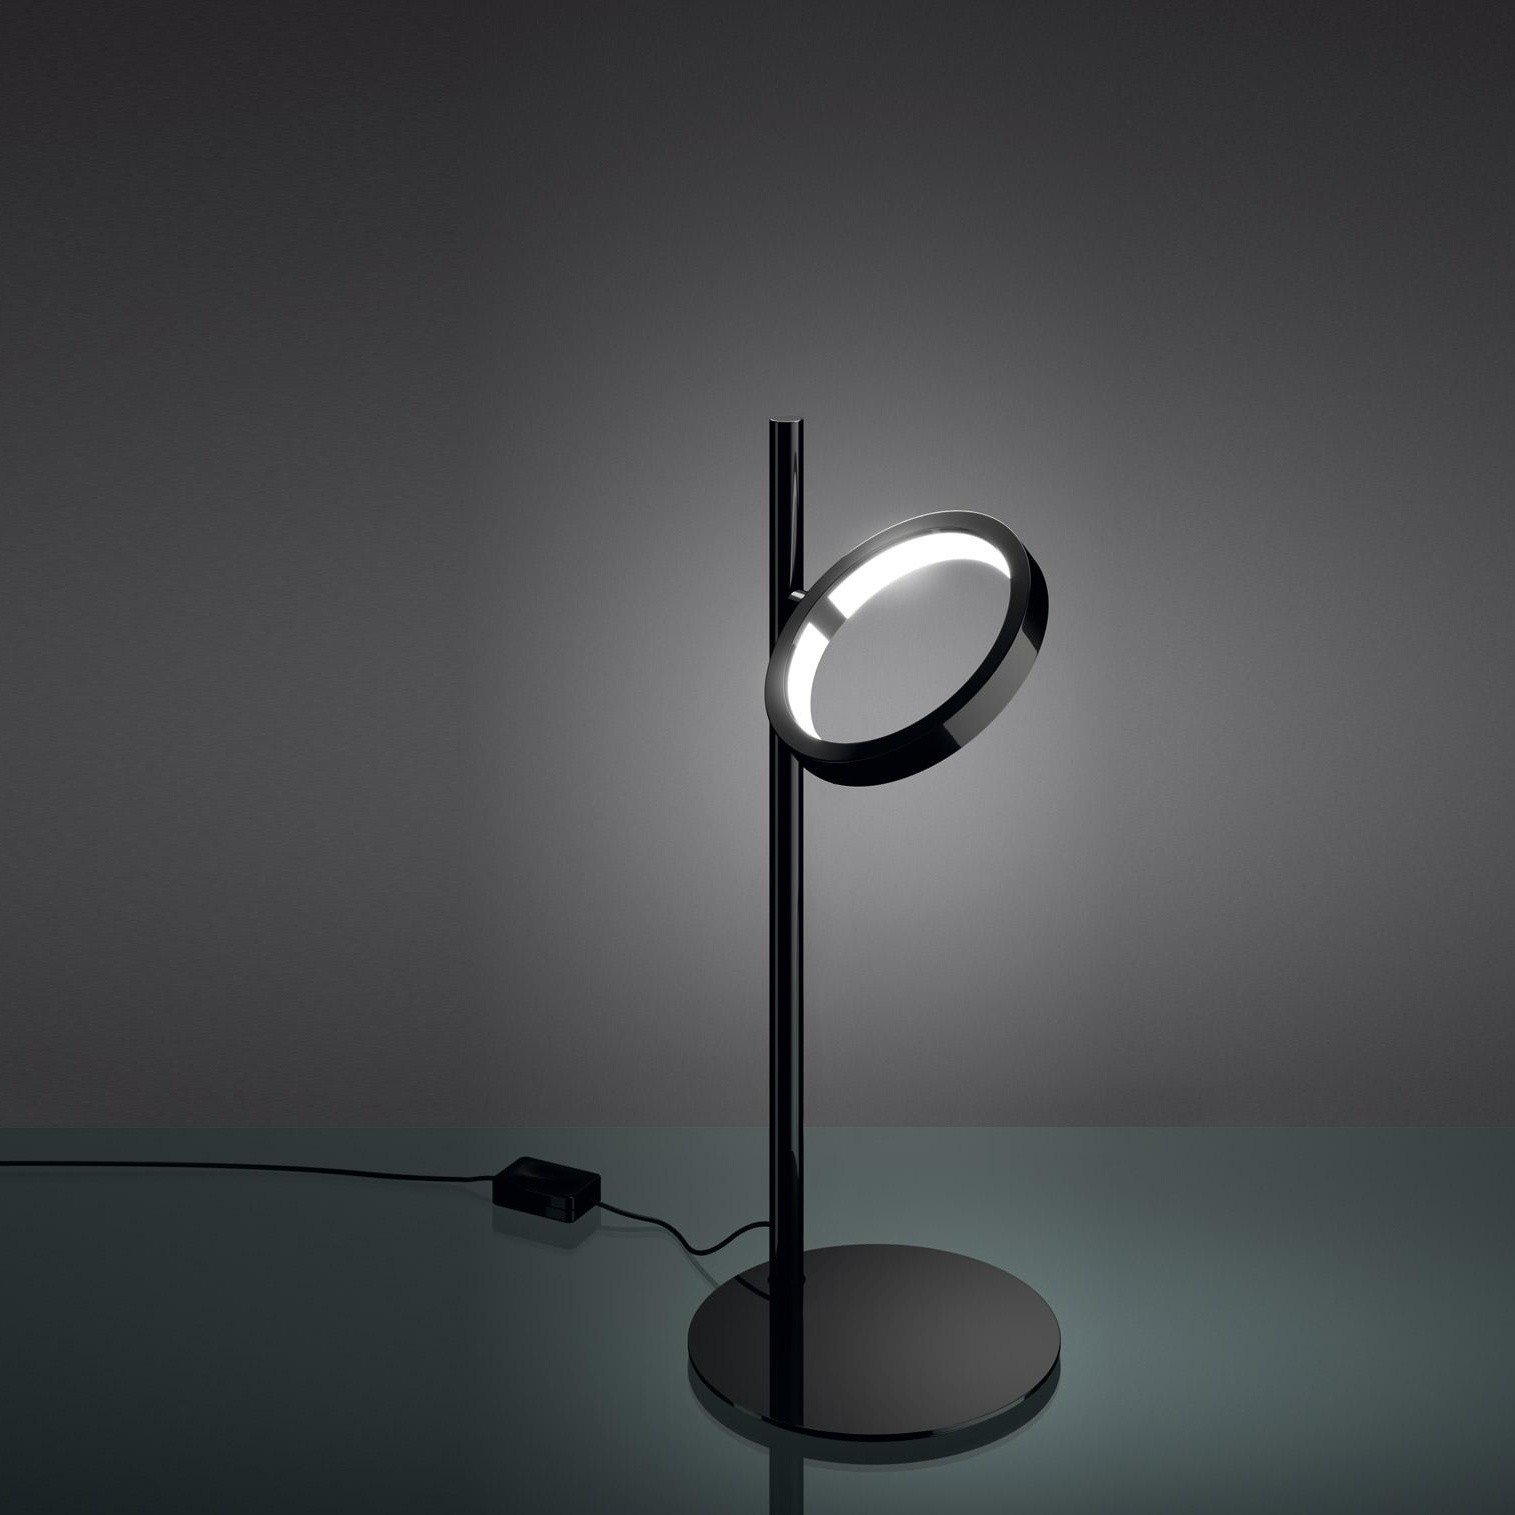 artemide ipparco led lampe de bureau ambientedirect. Black Bedroom Furniture Sets. Home Design Ideas